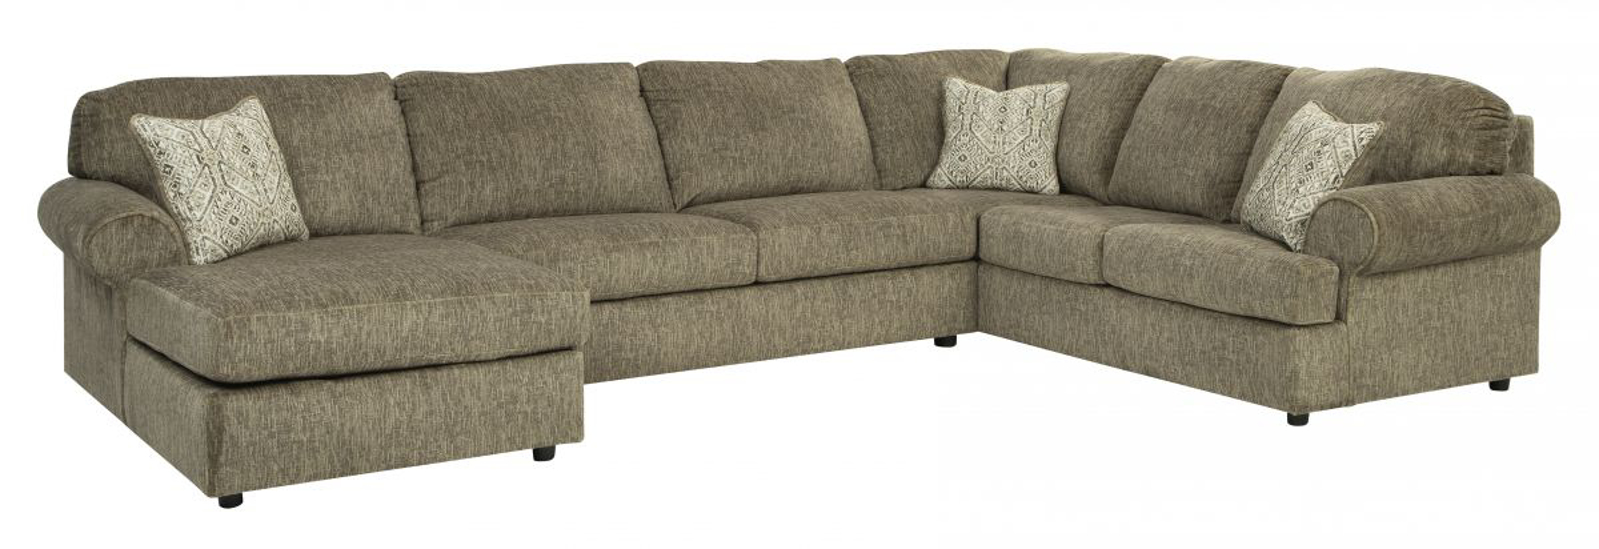 Picture of Hoylake Sectional